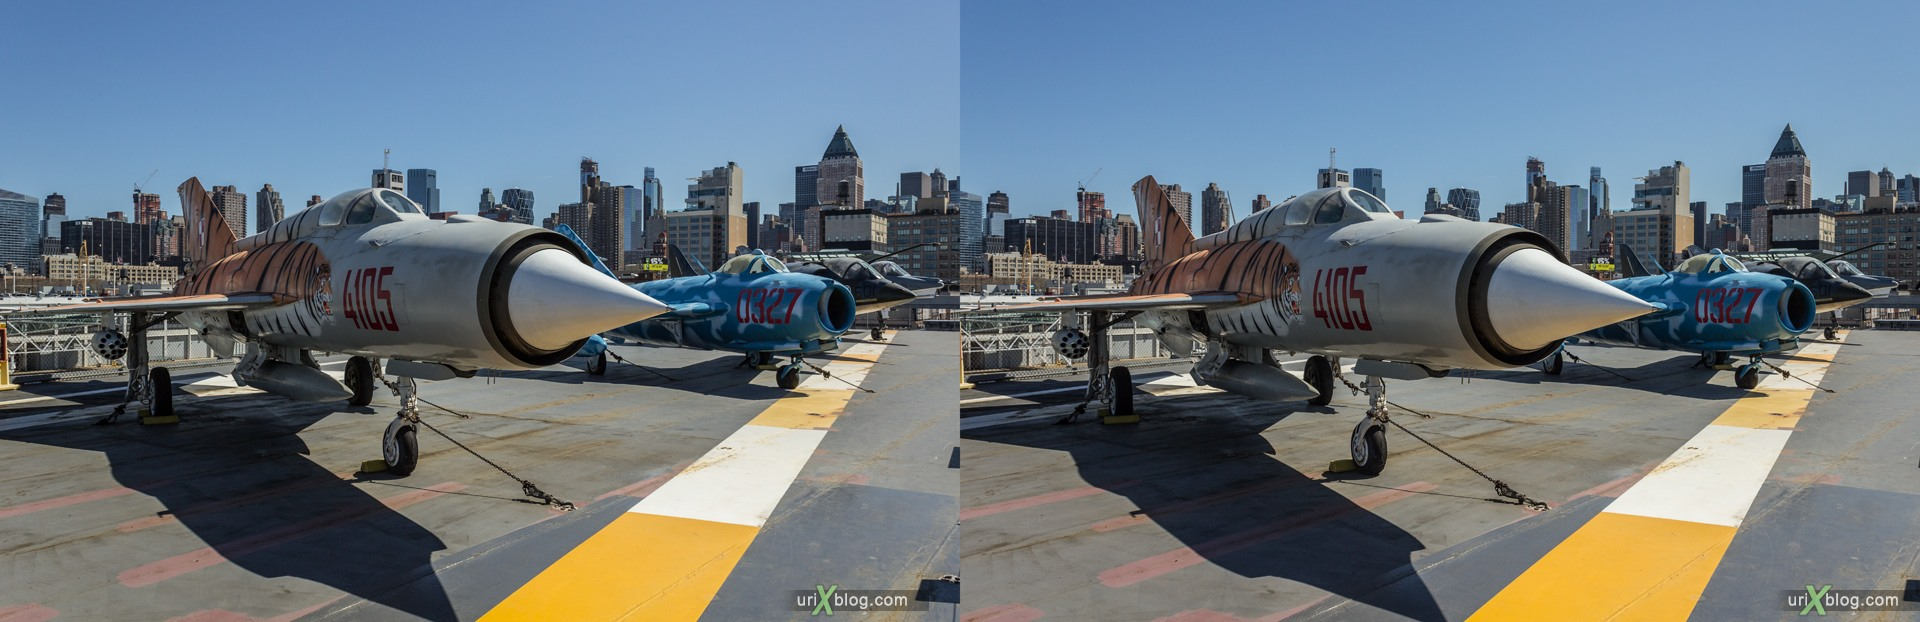 2013, USA, NYC, New York, aircraft carrier Intrepid museum, MiG-21, sea, air, space, ship, submarine, aircraft, airplane, helicopter, military, 3D, stereo pair, cross-eyed, crossview, cross view stereo pair, stereoscopic